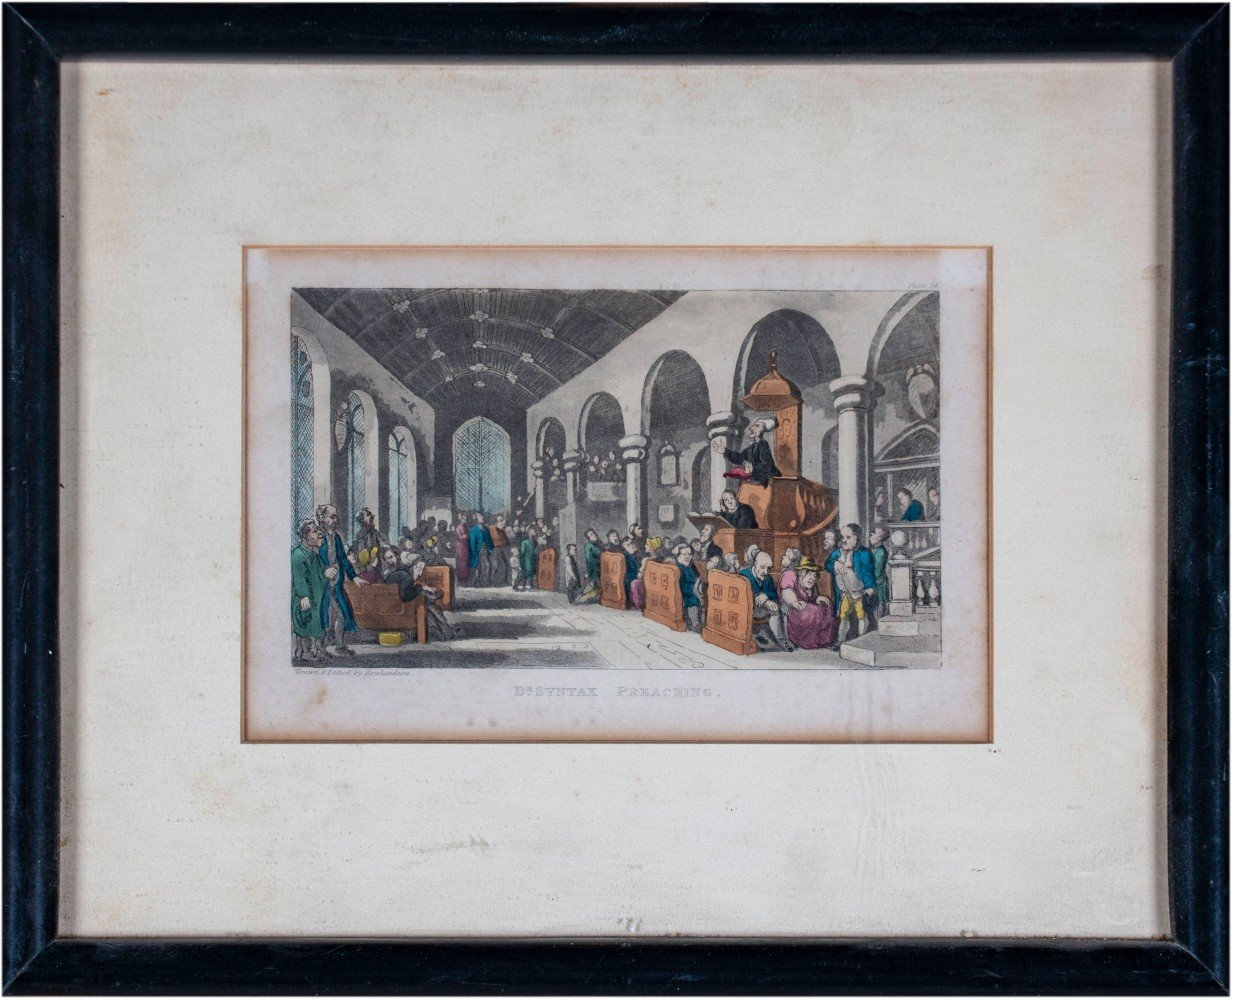 43 Set of Thirteen English Prints from the Tours of Doctor Syntax, Mid 19th Century